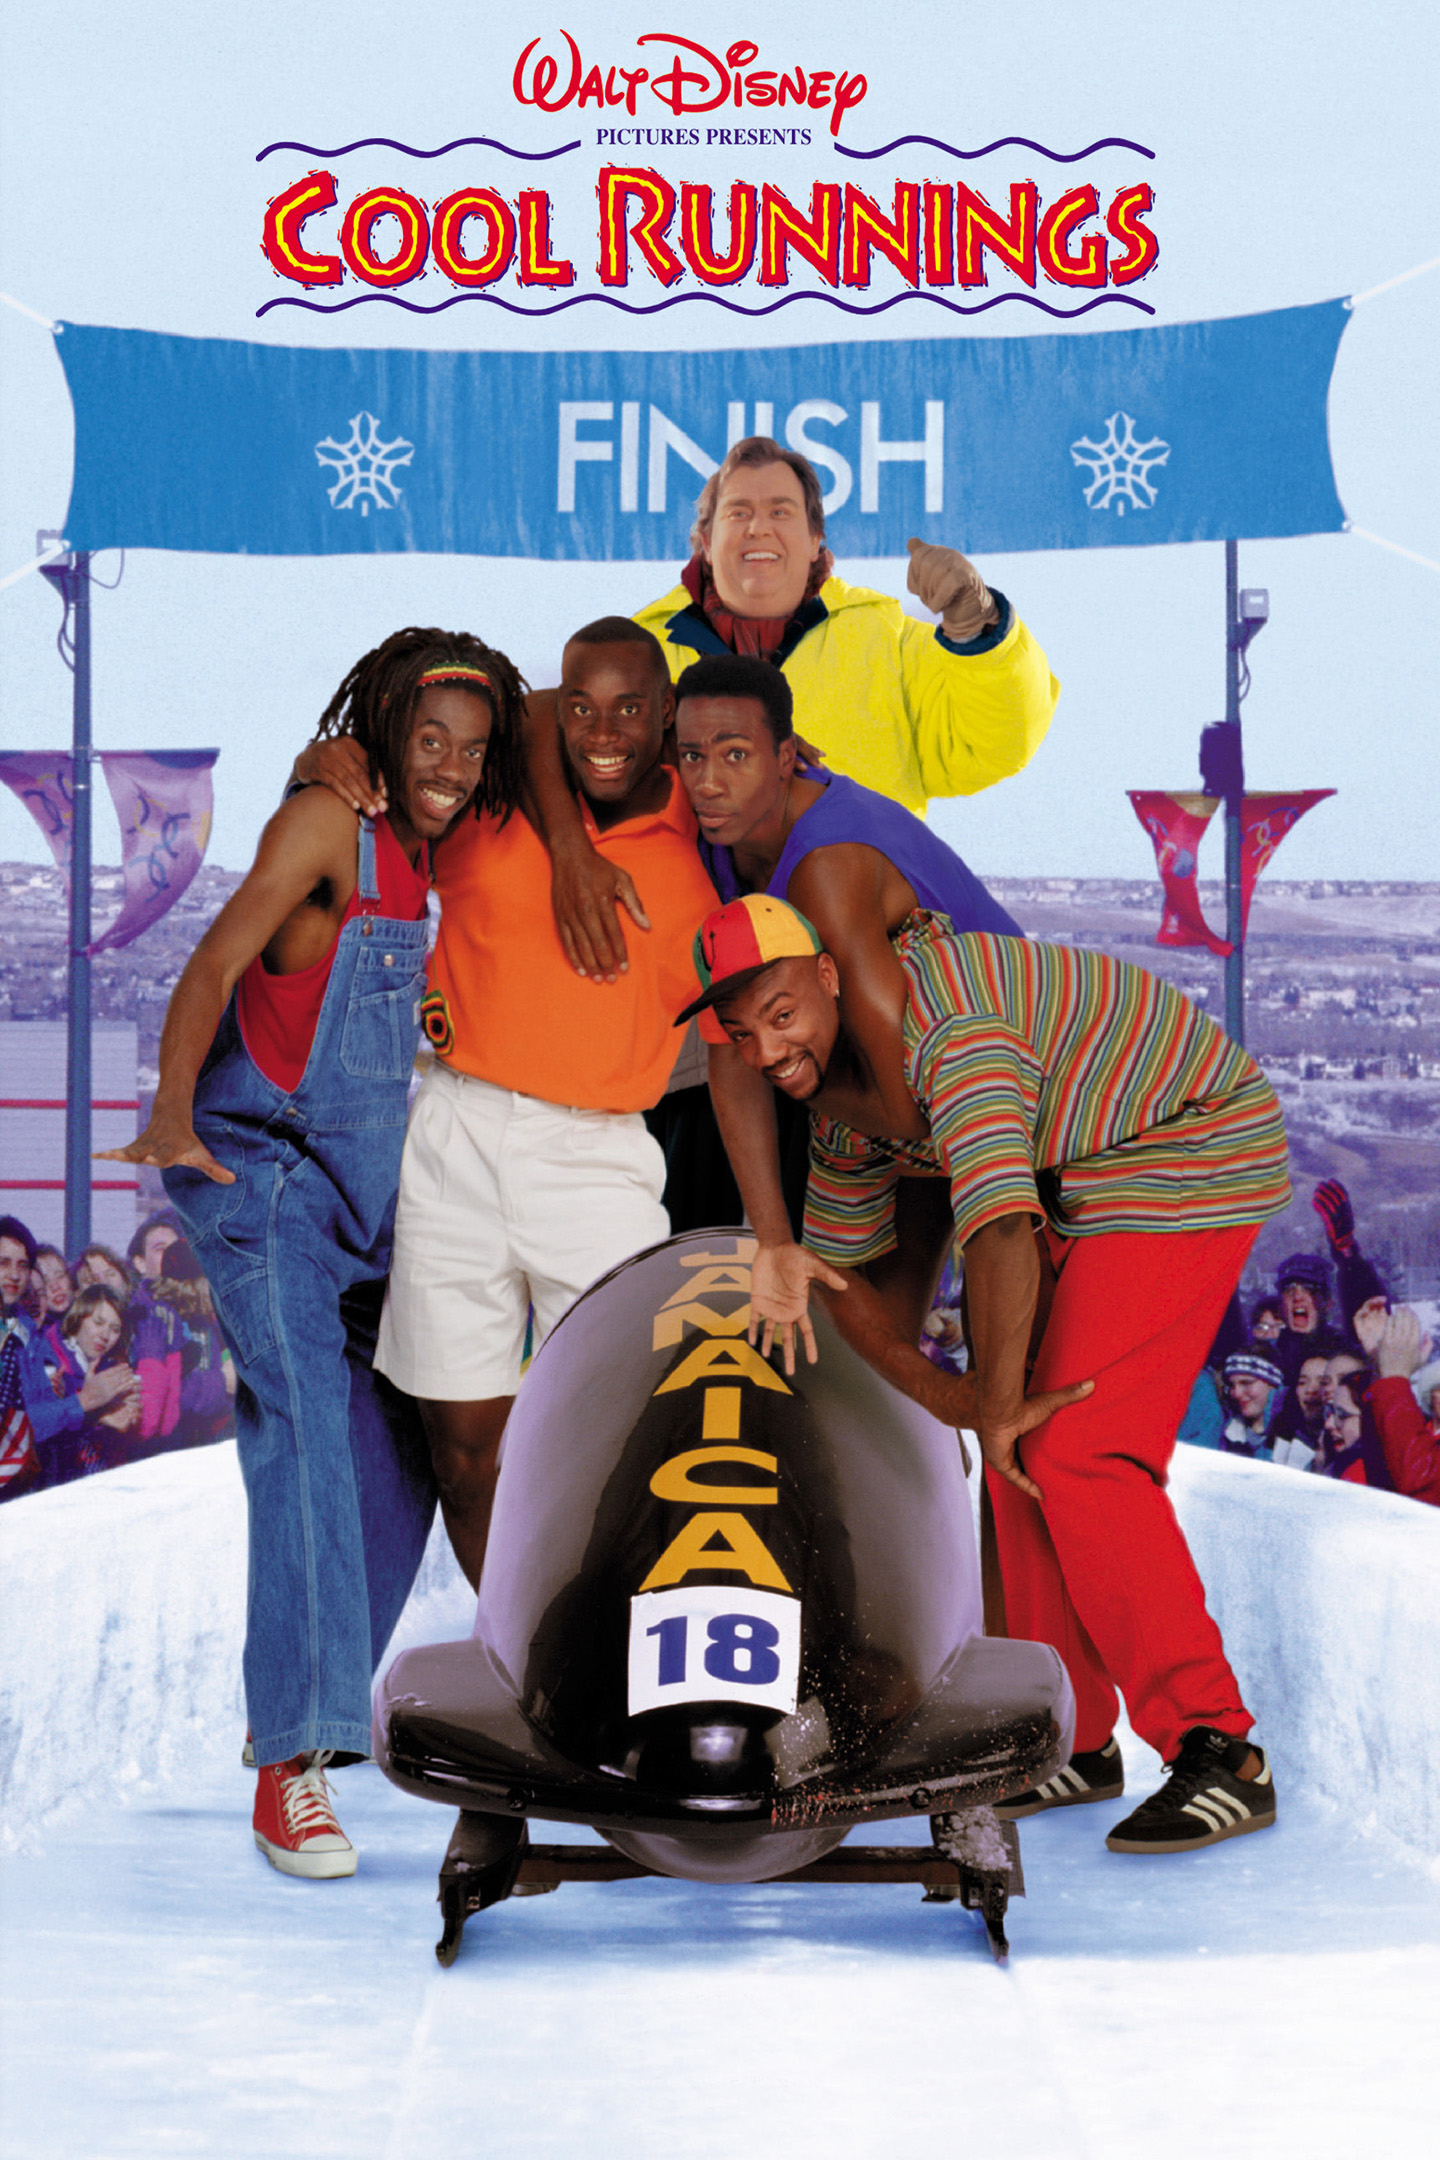 cool-runnings-poster-artwork-leon-john-candy-paul-coeur.jpg